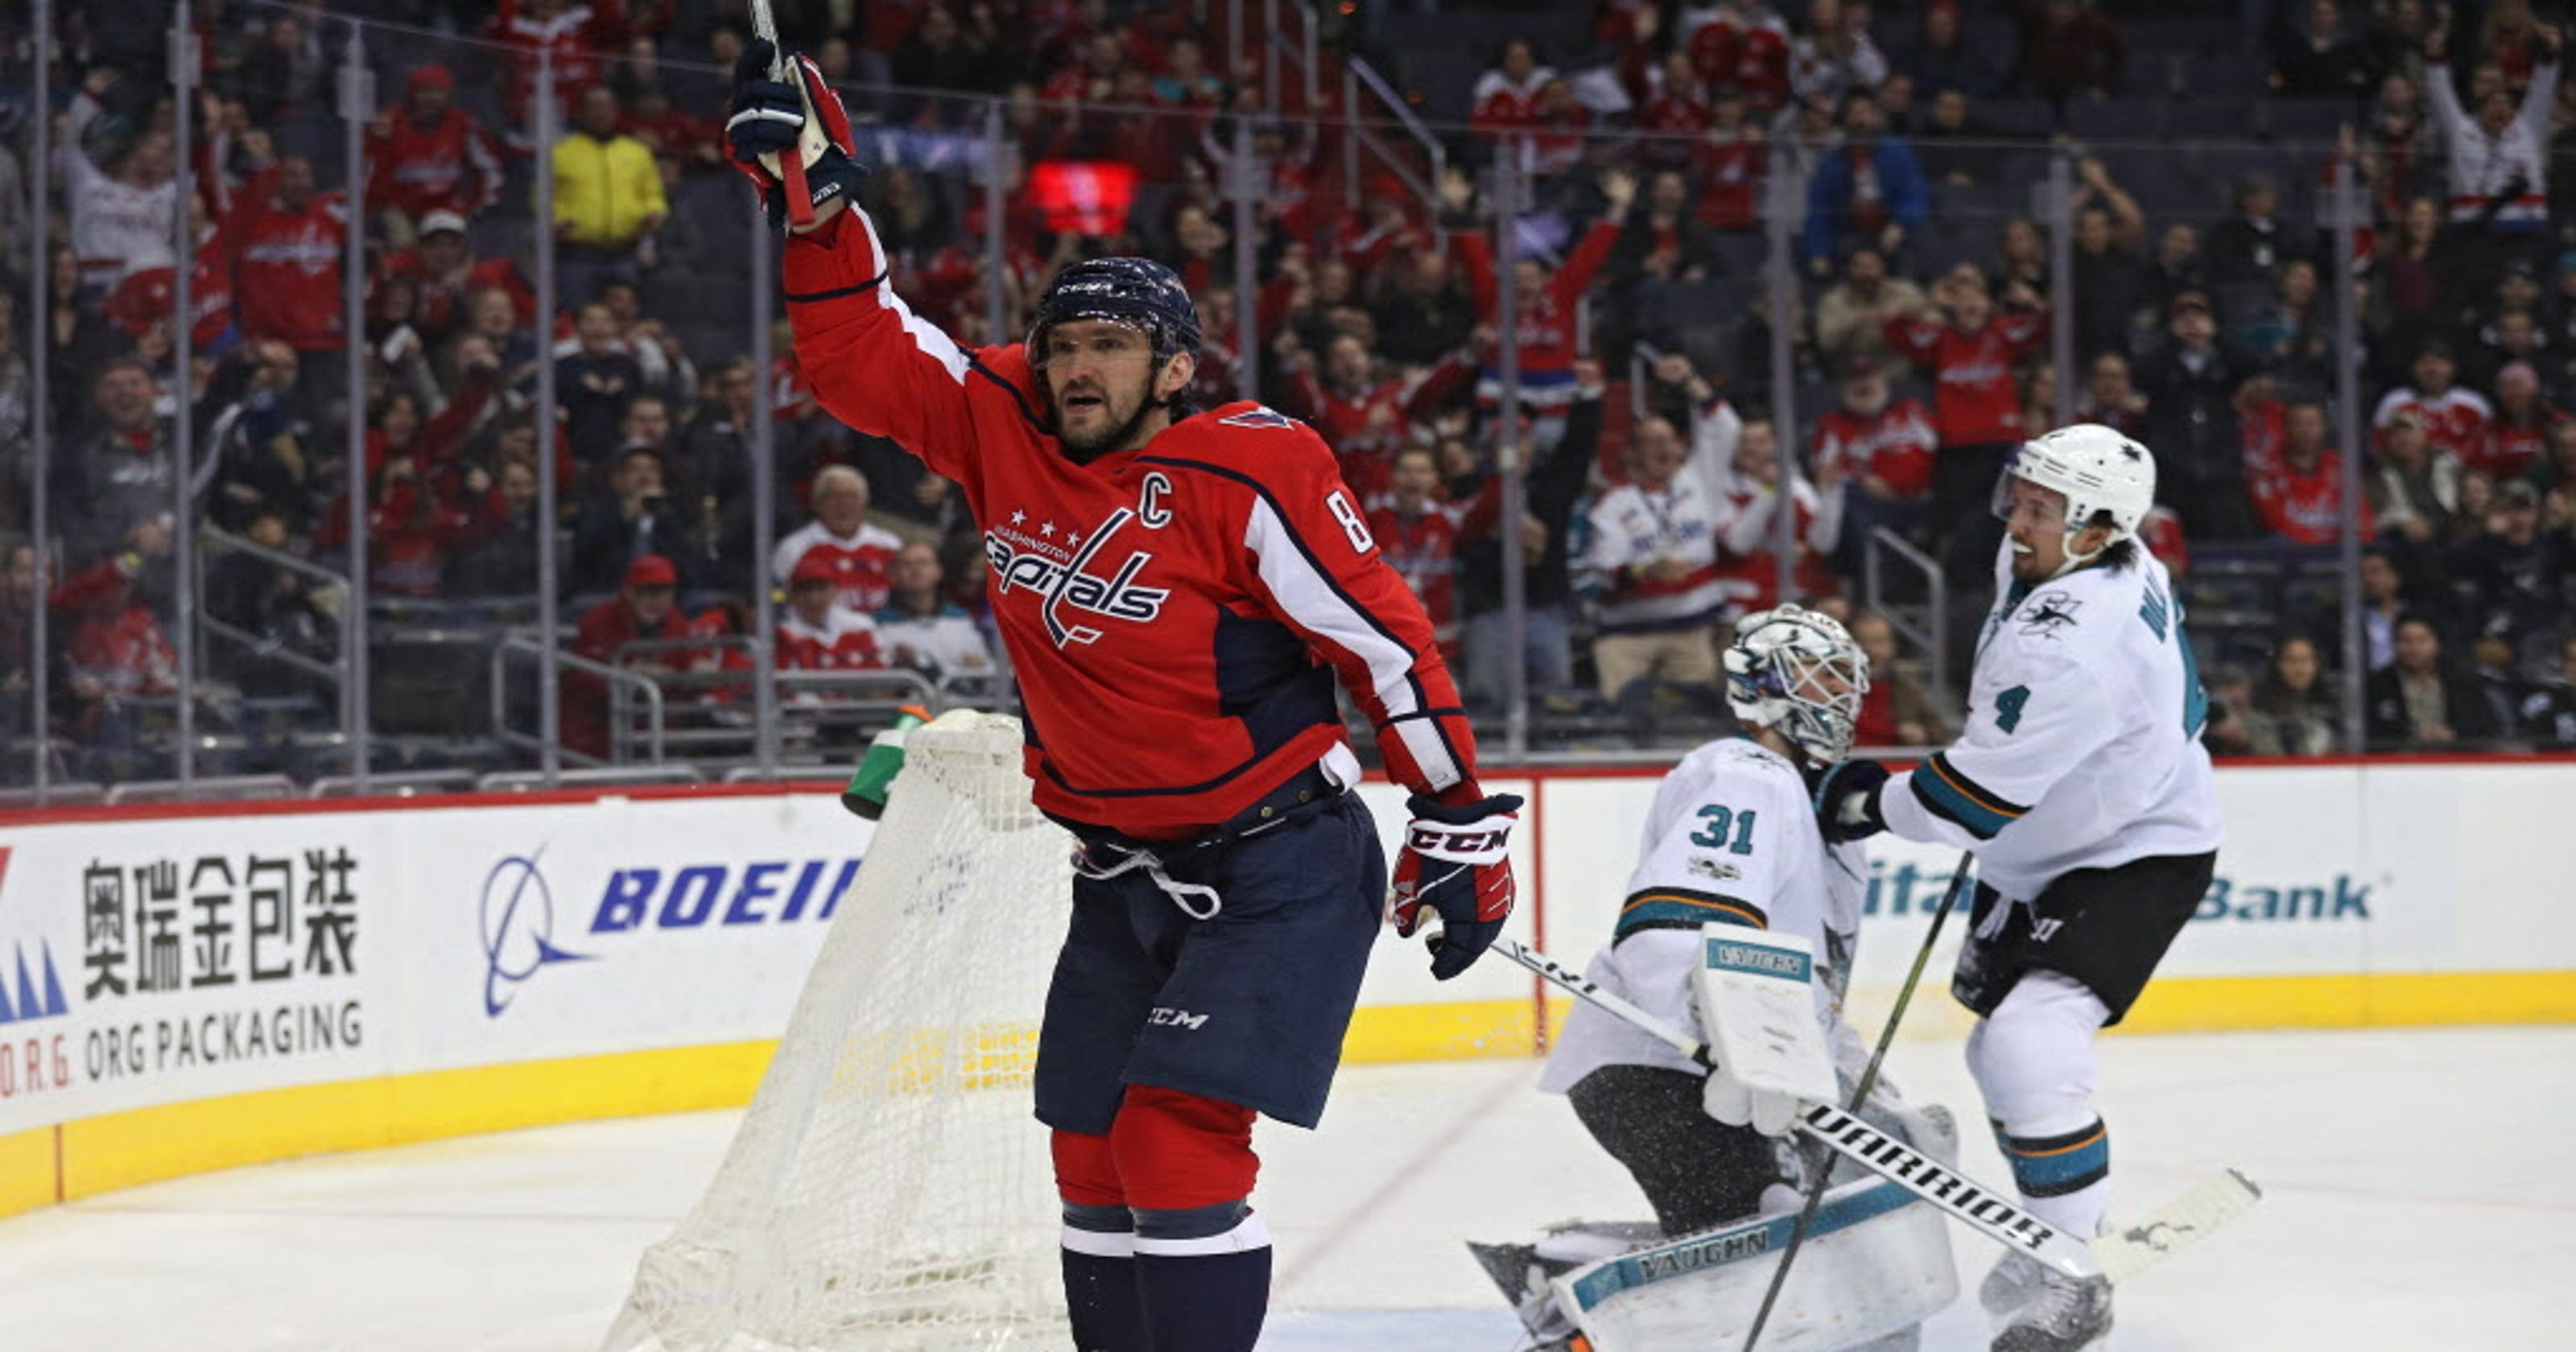 1d05bf980b4 Alex Ovechkin moves to 20th on all-time goal list in Capitals win